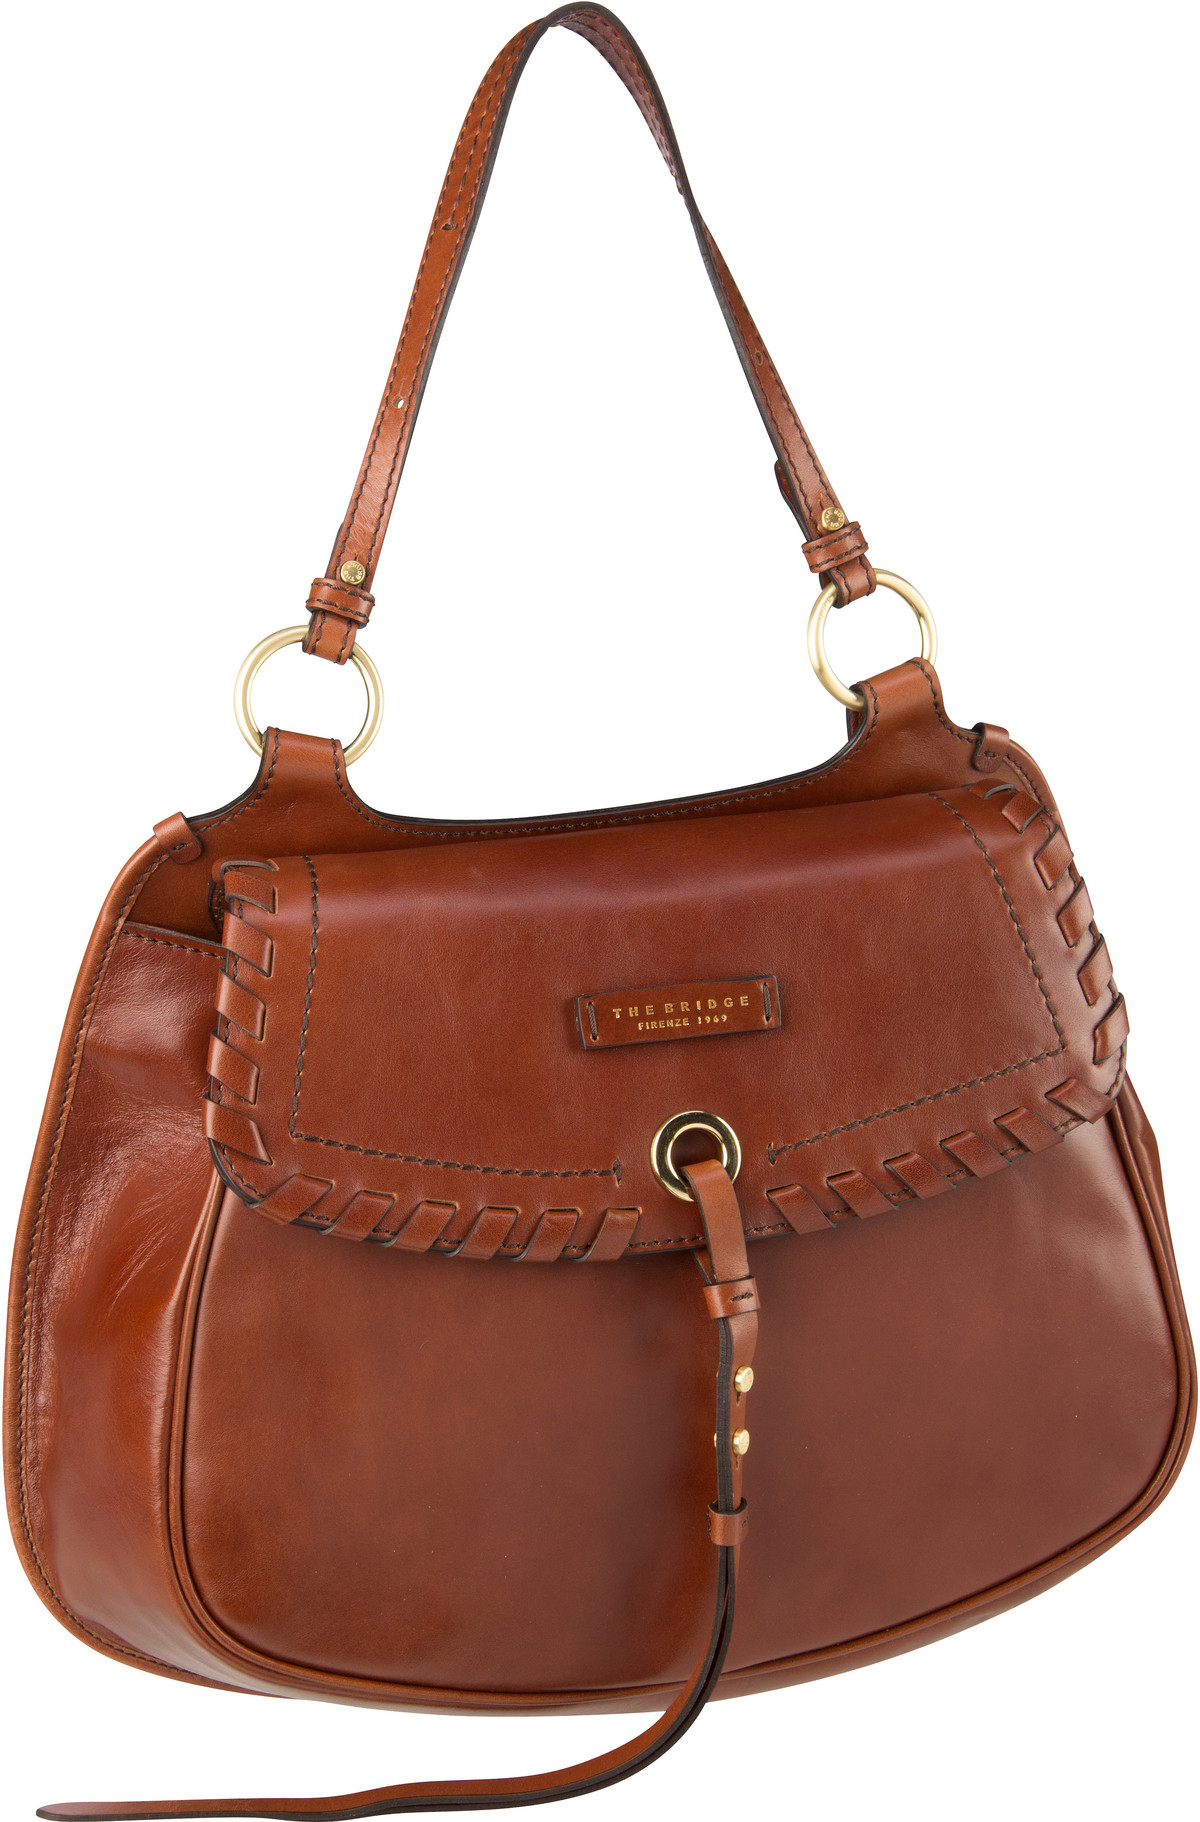 Handtasche Vallombrosa Shopper 5939 Marrone/Oro